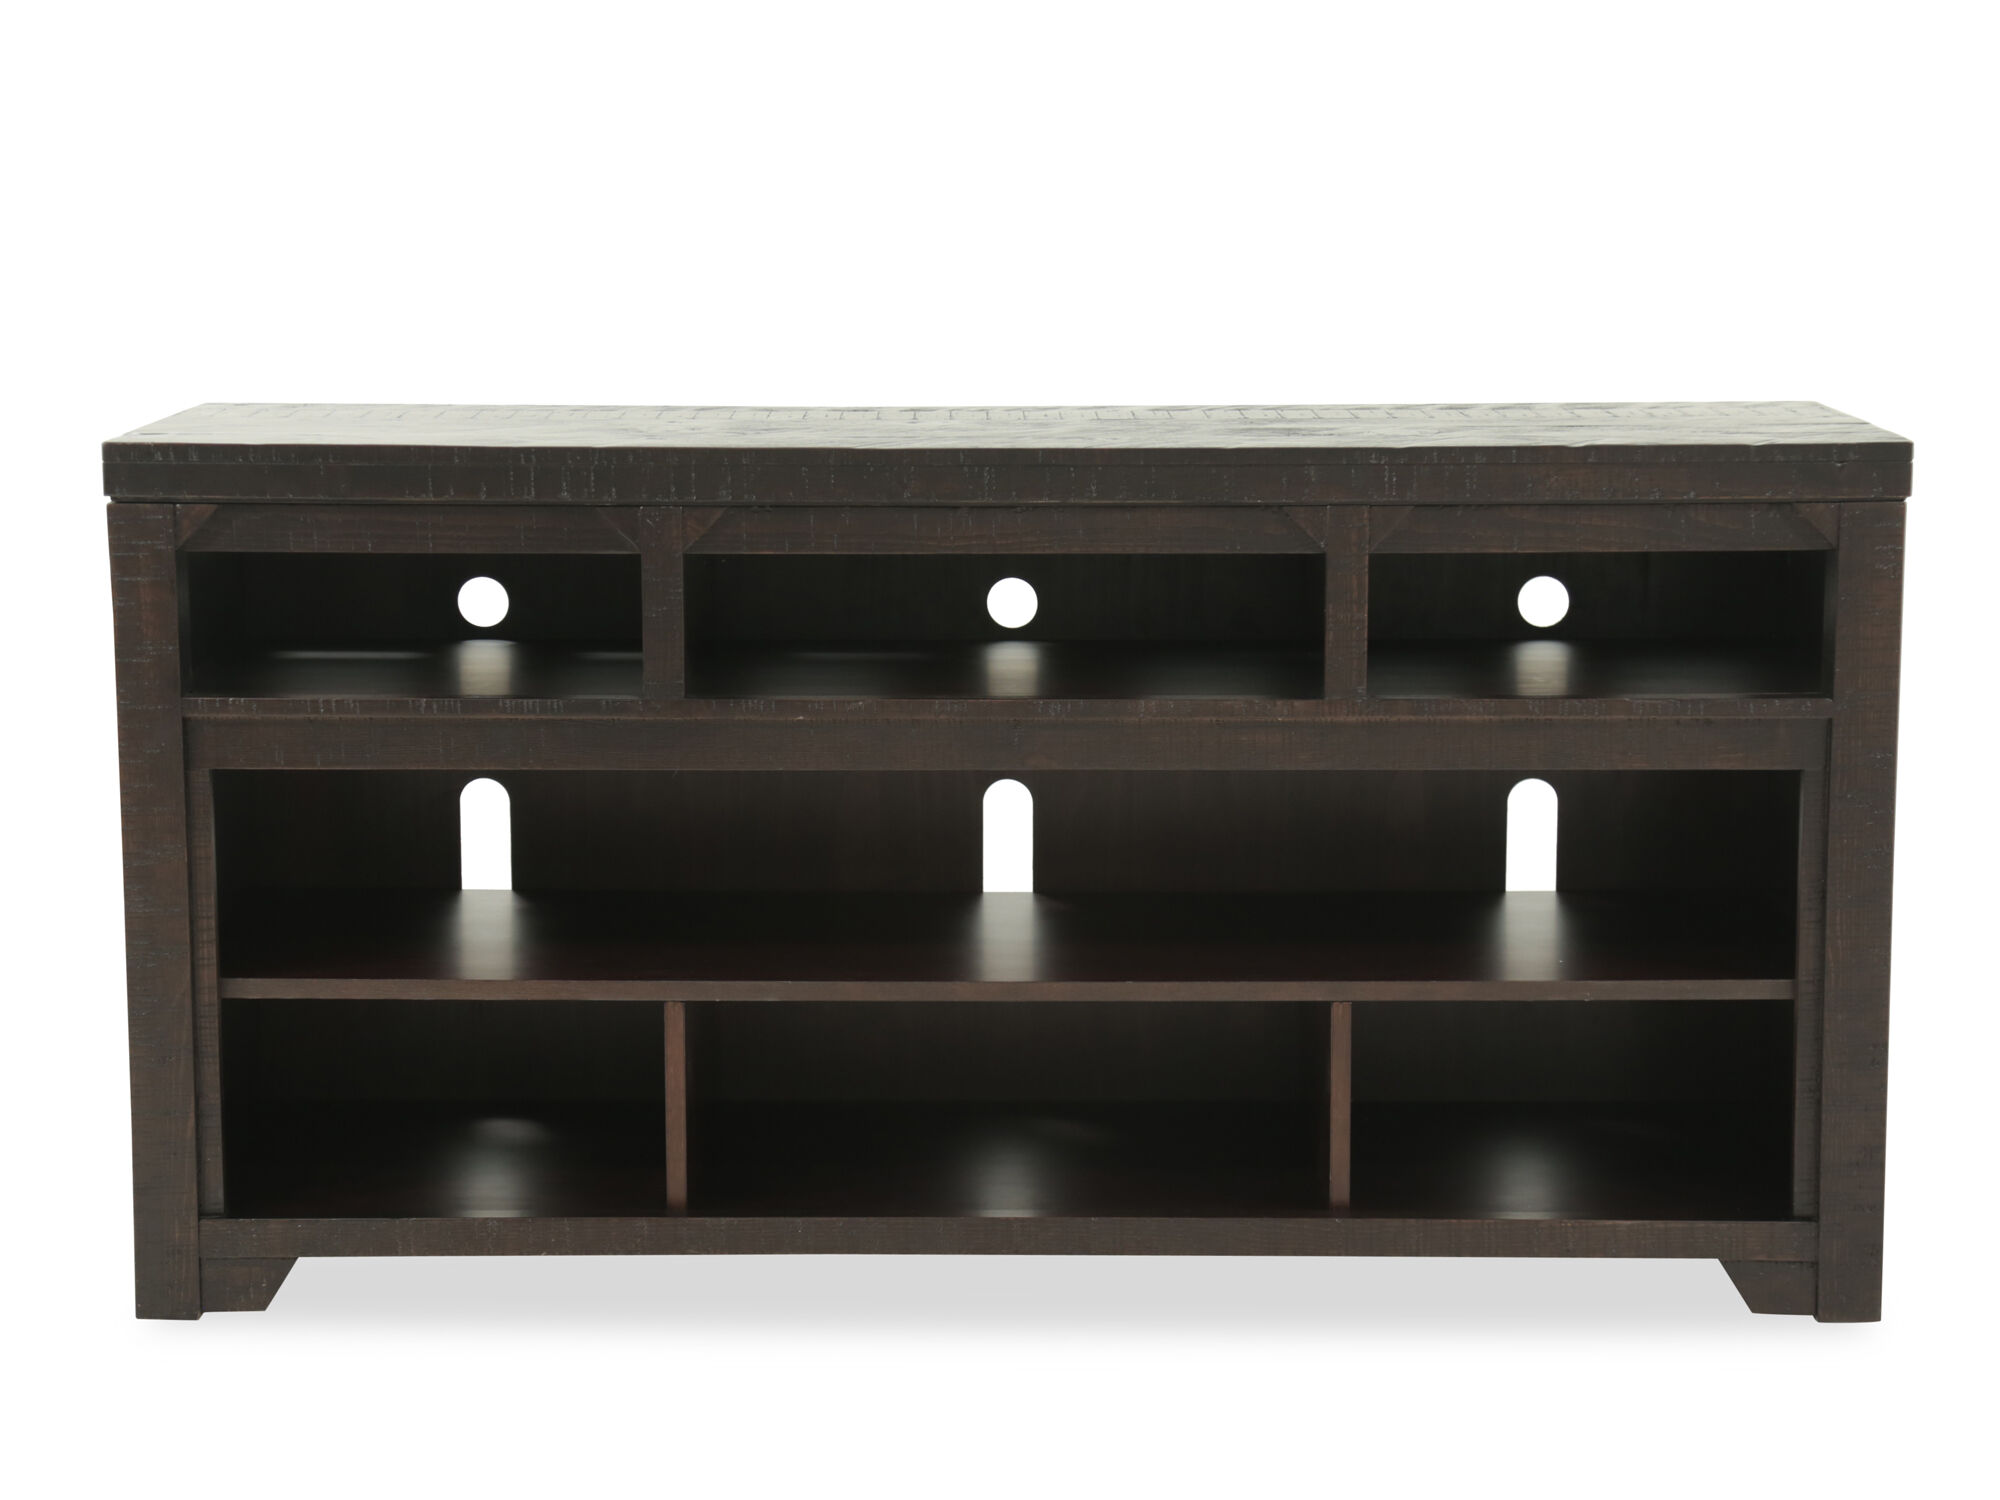 Captivating Images Open Shelves Casual TV Stand In Dark Rum Open Shelves Casual TV Stand  In Dark Rum